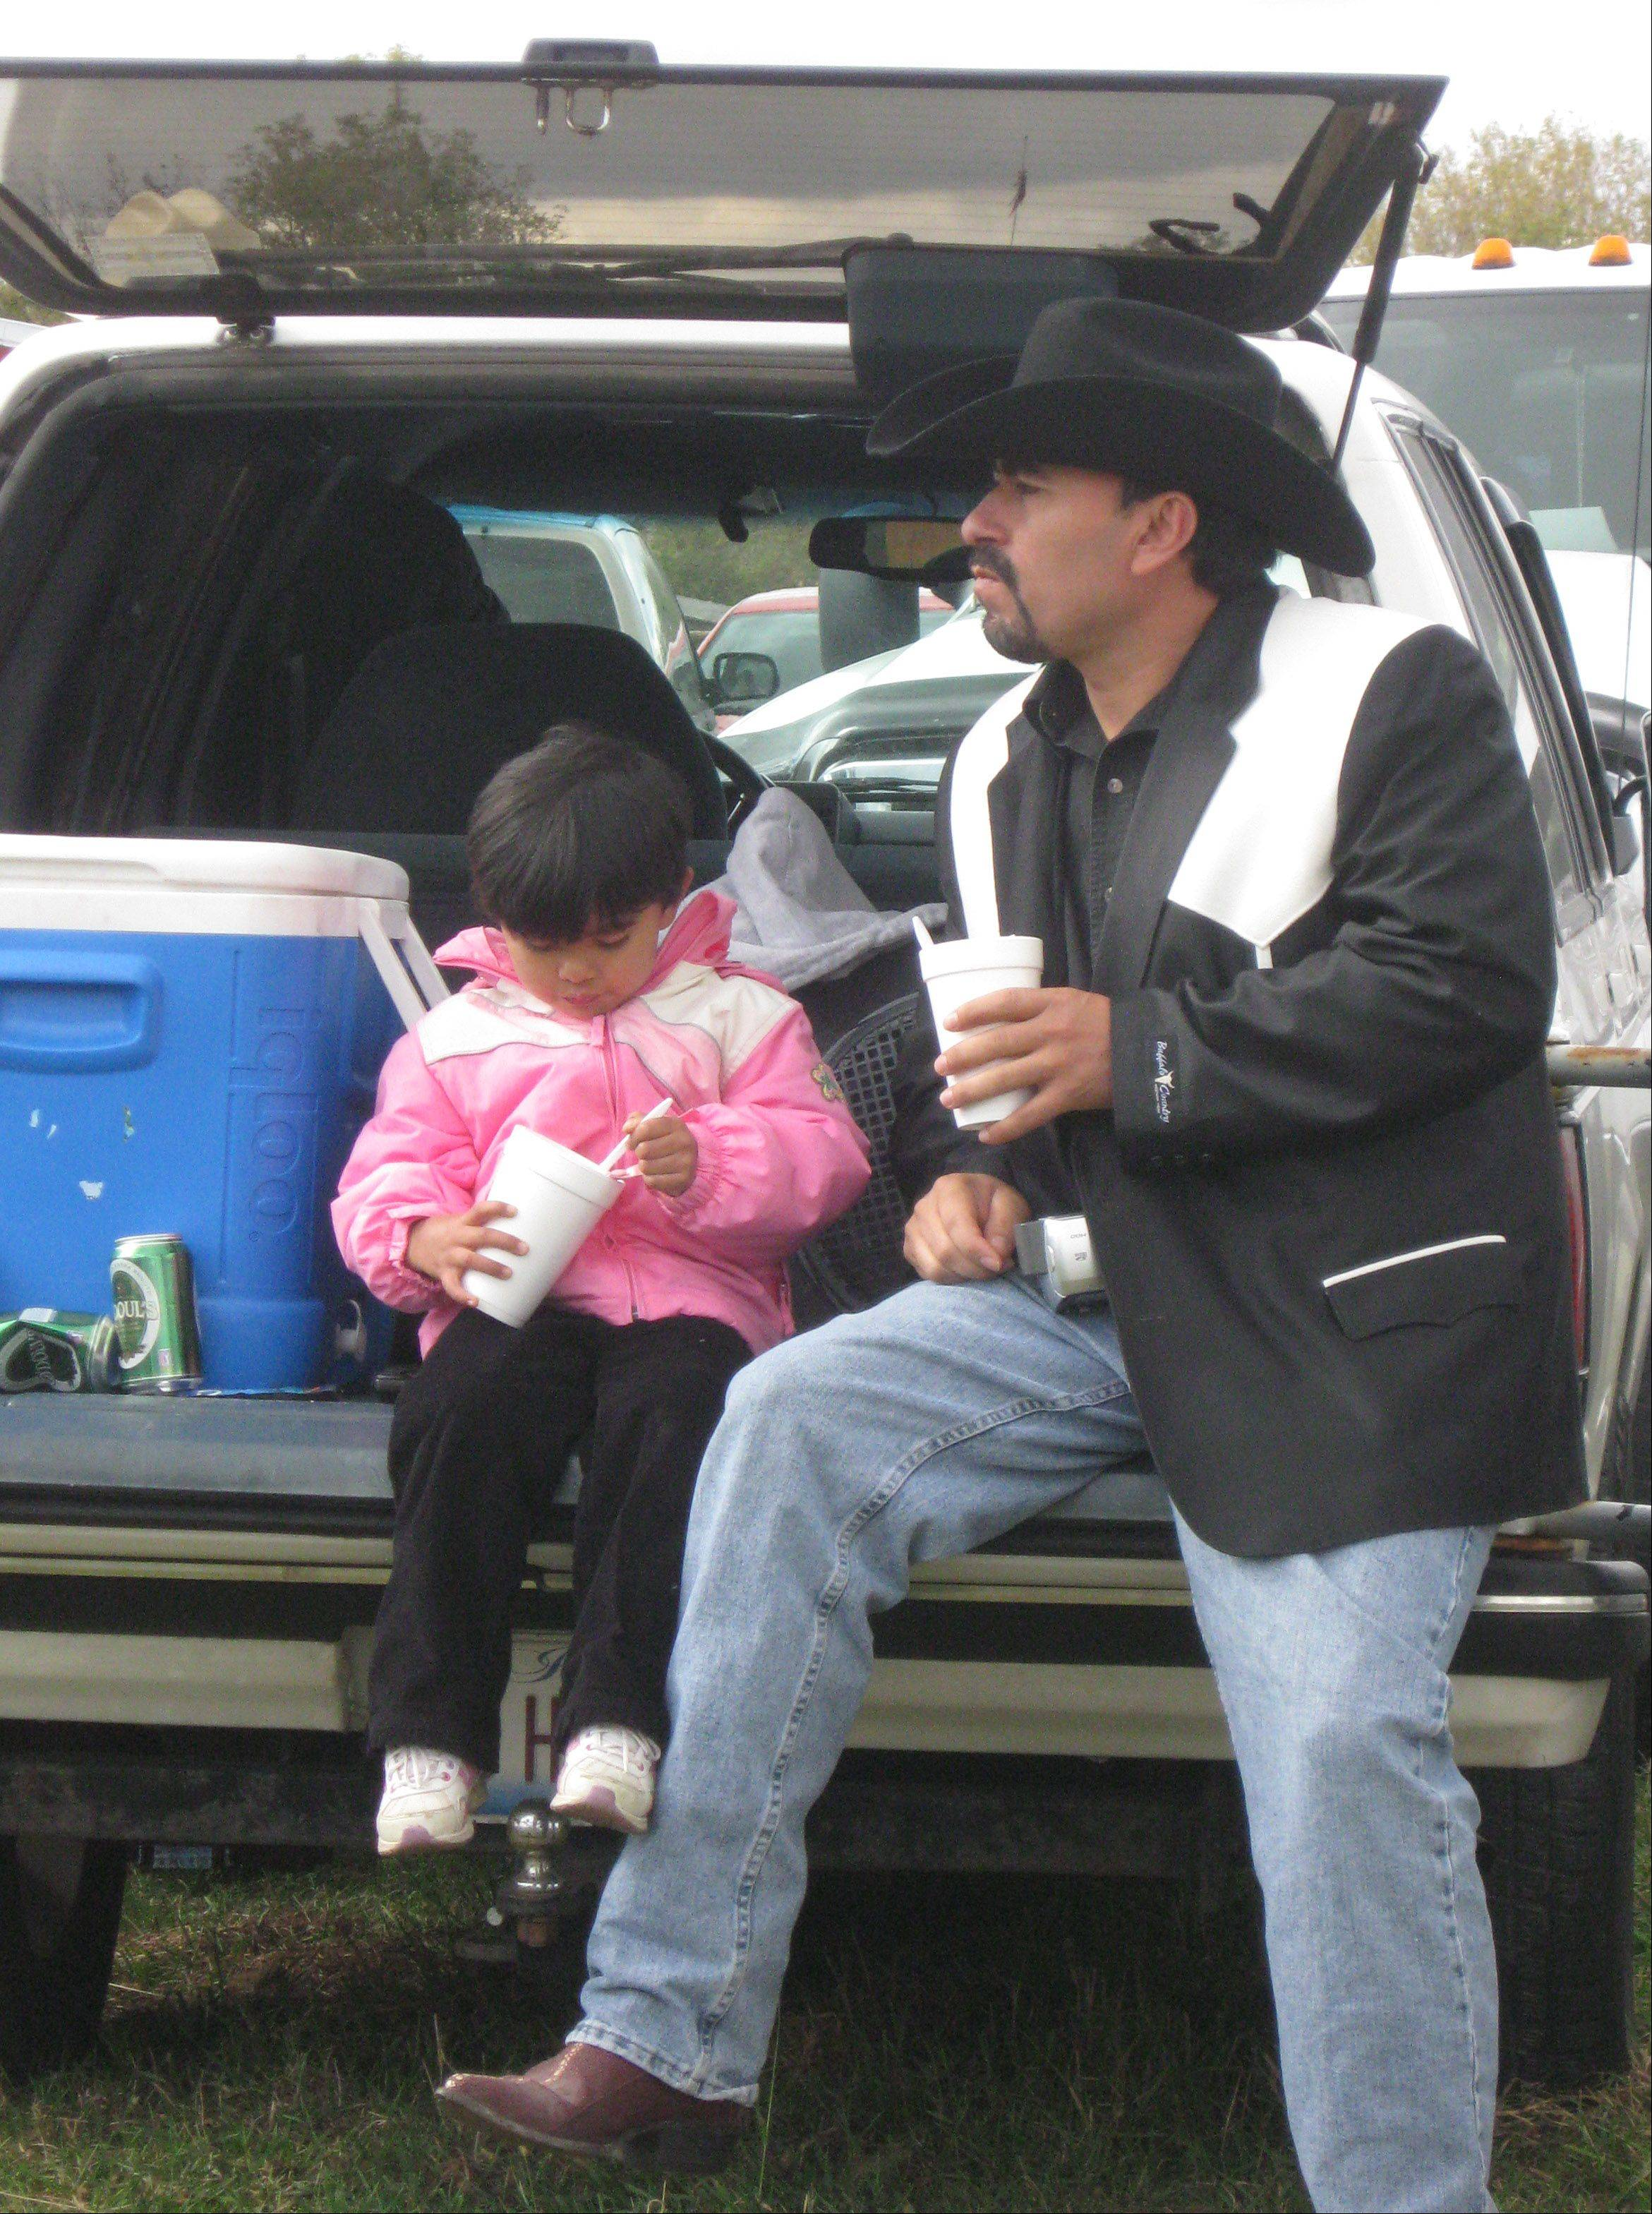 Jos� Rivera and his daughter, Starlight, of Crystal Lake take a break from horse races at Poker de Ases Ranch and Training Center in Union. Each race lasts about 14 seconds, with 30 minutes between races to eat and mingle with friends.